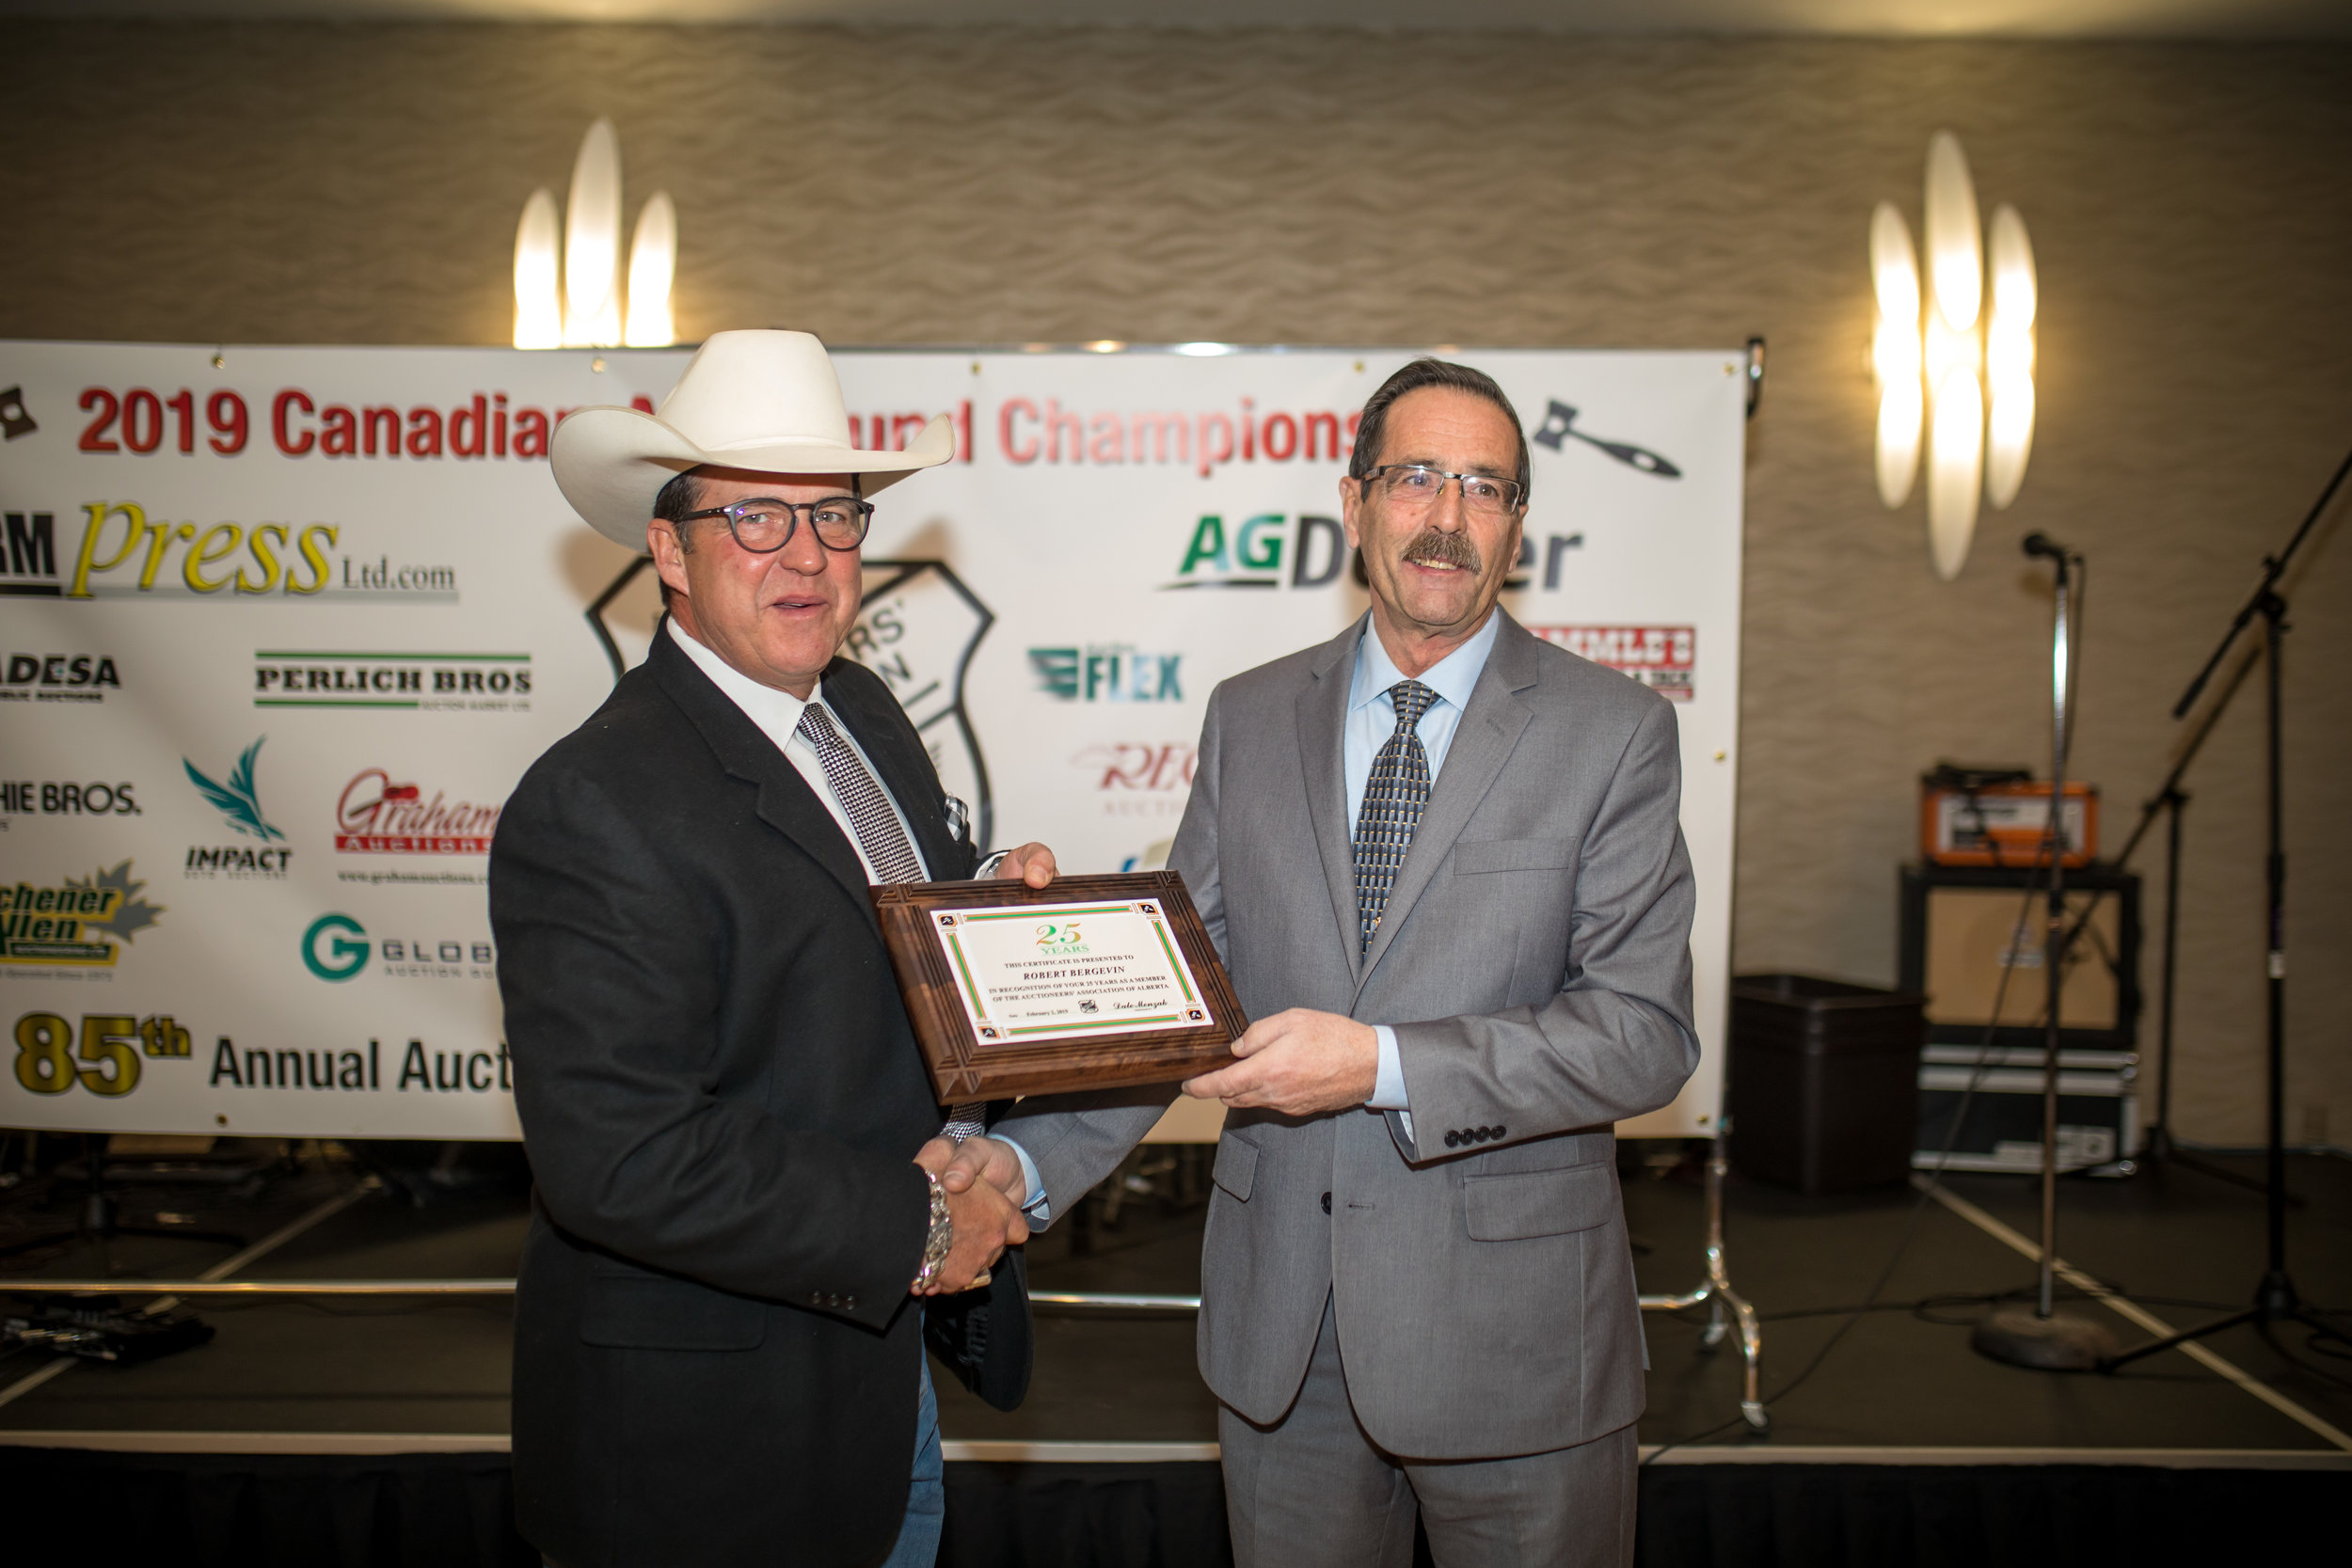 2019 02-02 Alberta Auctioneer Convention Day 03 - Calgary 03.jpg